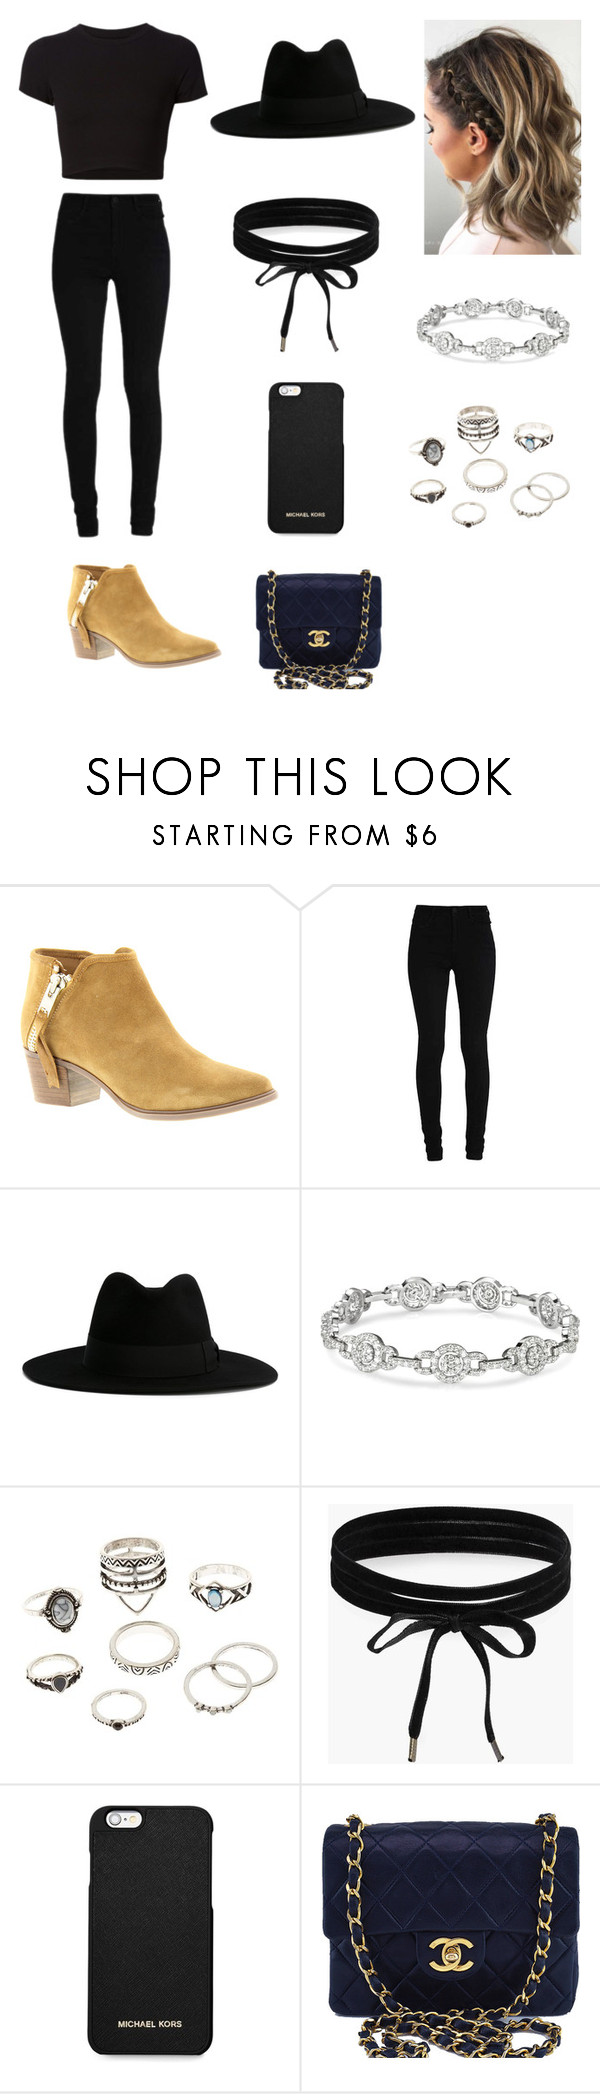 """""""Untitled #31"""" by chanita03 ❤ liked on Polyvore featuring Steven by Steve Madden, Getting Back To Square One, Yves Saint Laurent, Charlotte Russe, Boohoo, MICHAEL Michael Kors and Chanel"""